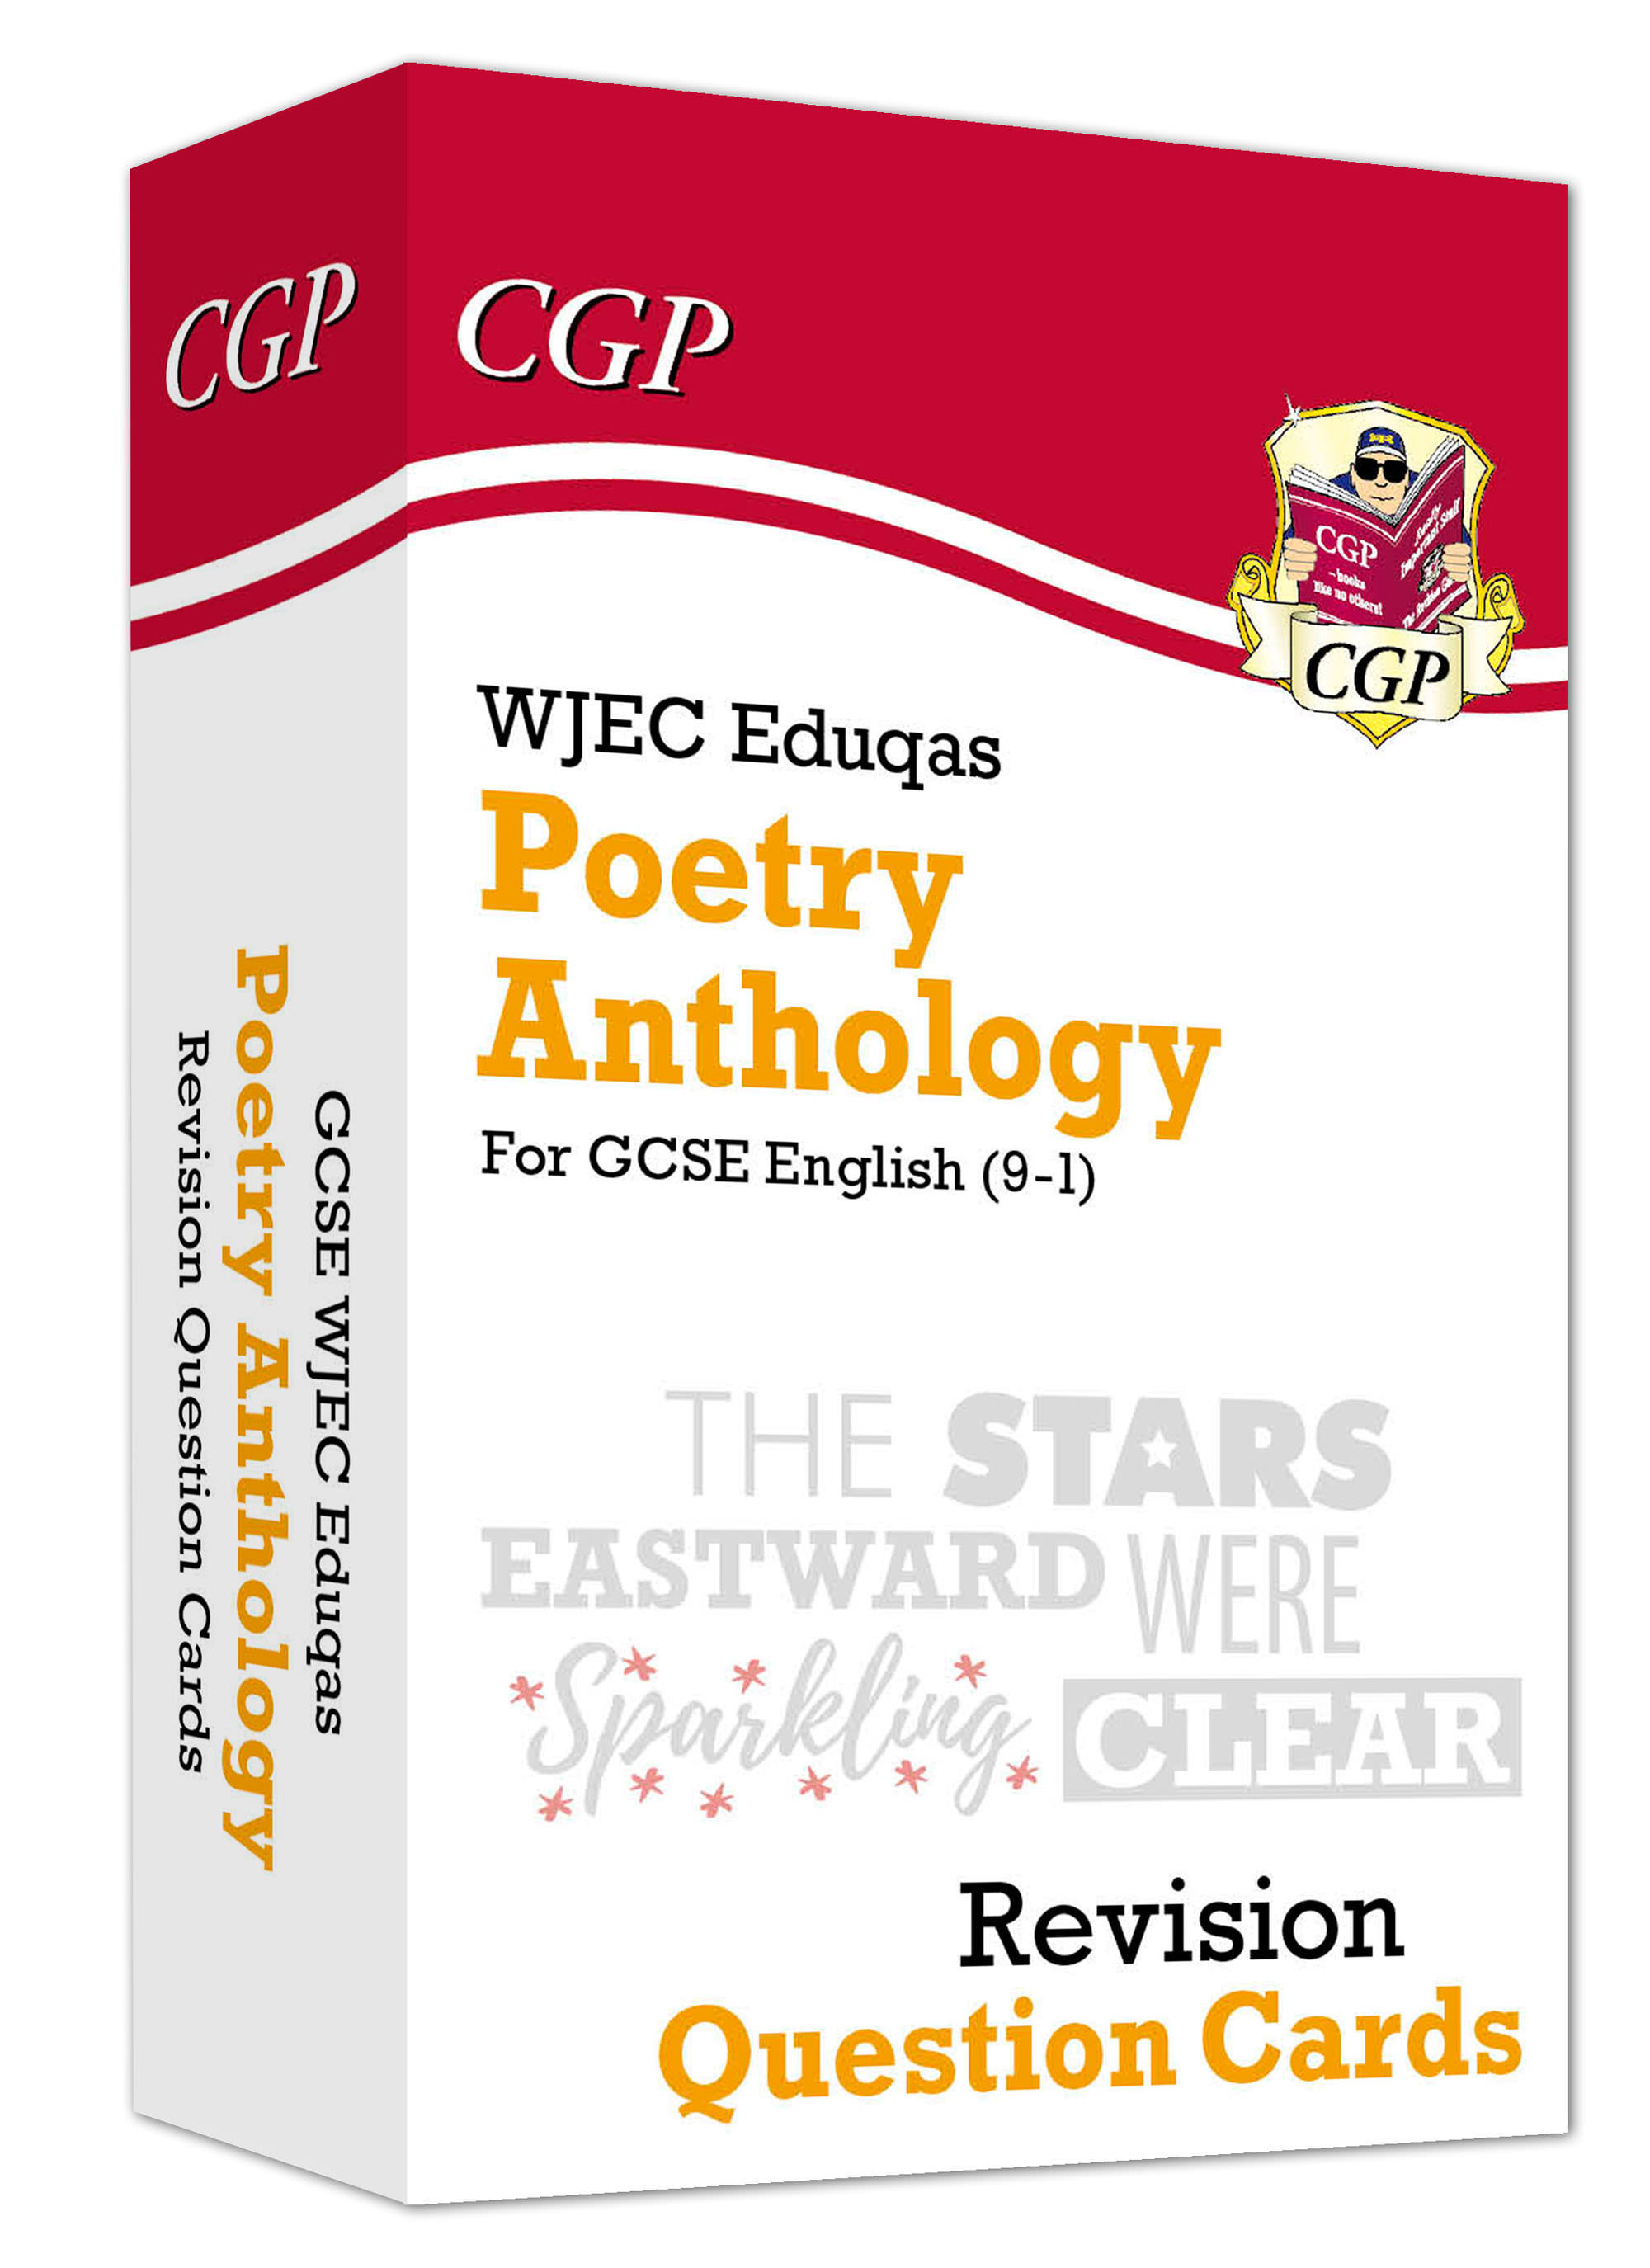 AWHF41 - New Grade 9-1 GCSE English: WJEC Eduqas Poetry Anthology - Revision Question Cards